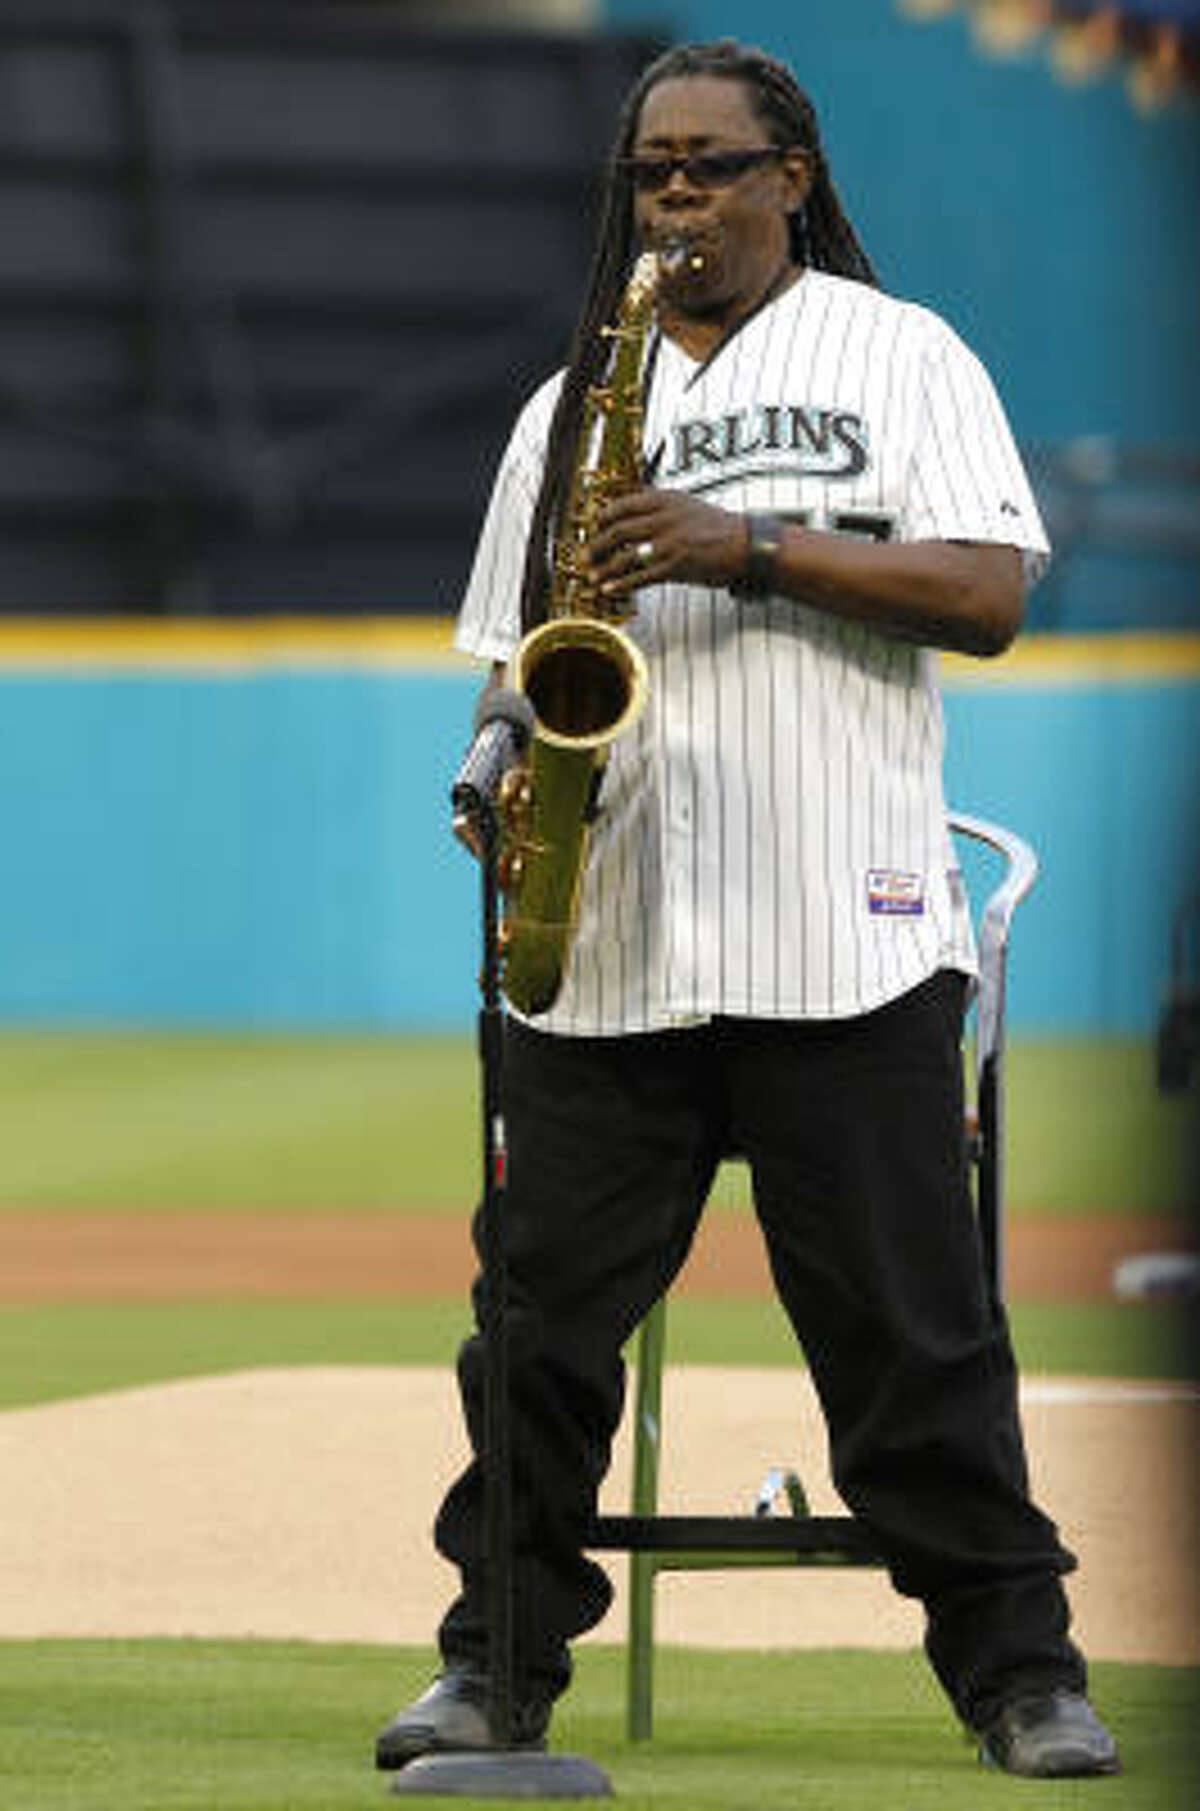 Clarence Clemons performs the national anthem before an opening day baseball game between the Florida Marlins and the New York Mets in Miami, Friday, April 1, 2011.